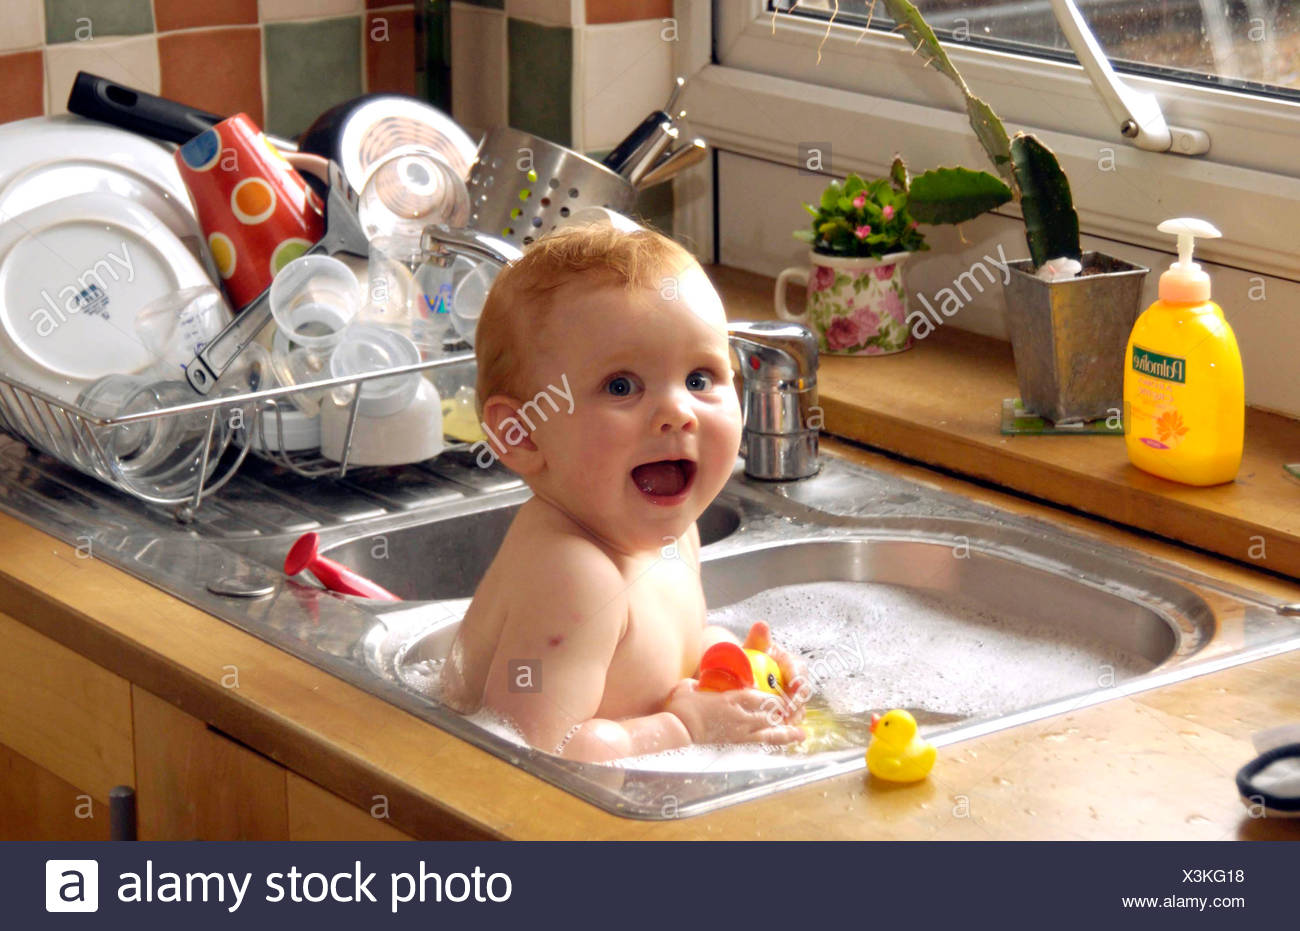 Baby Mouth Rubber Duck Stock Photos & Baby Mouth Rubber Duck Stock ...